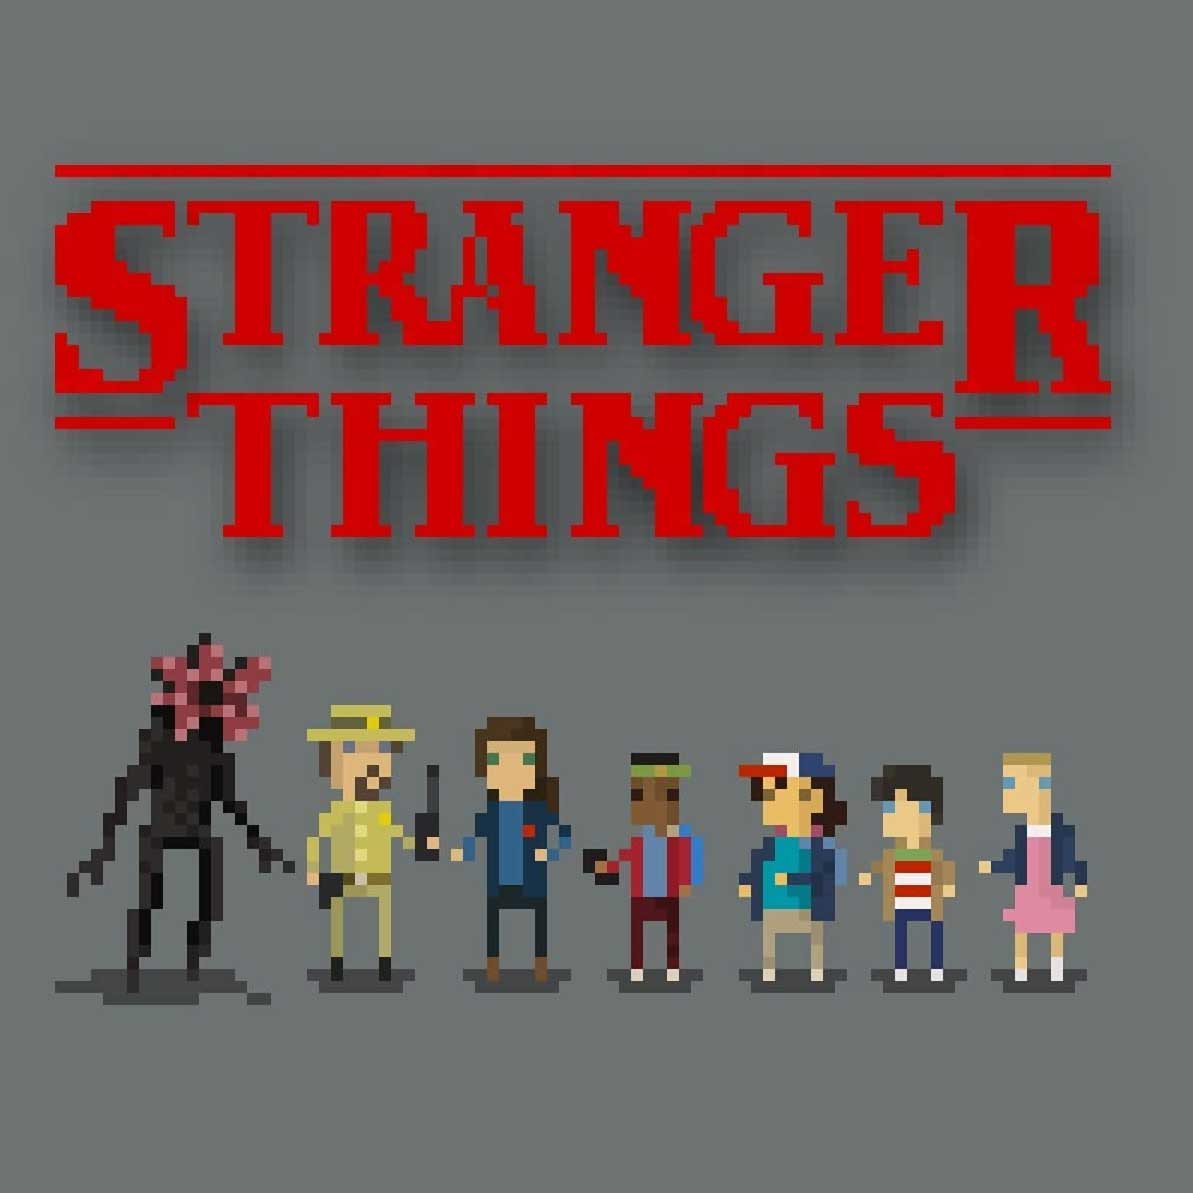 Filme und Serien in verpixeltem 8-Bit-Look chuppixel-pixel-art-movies-tv_05